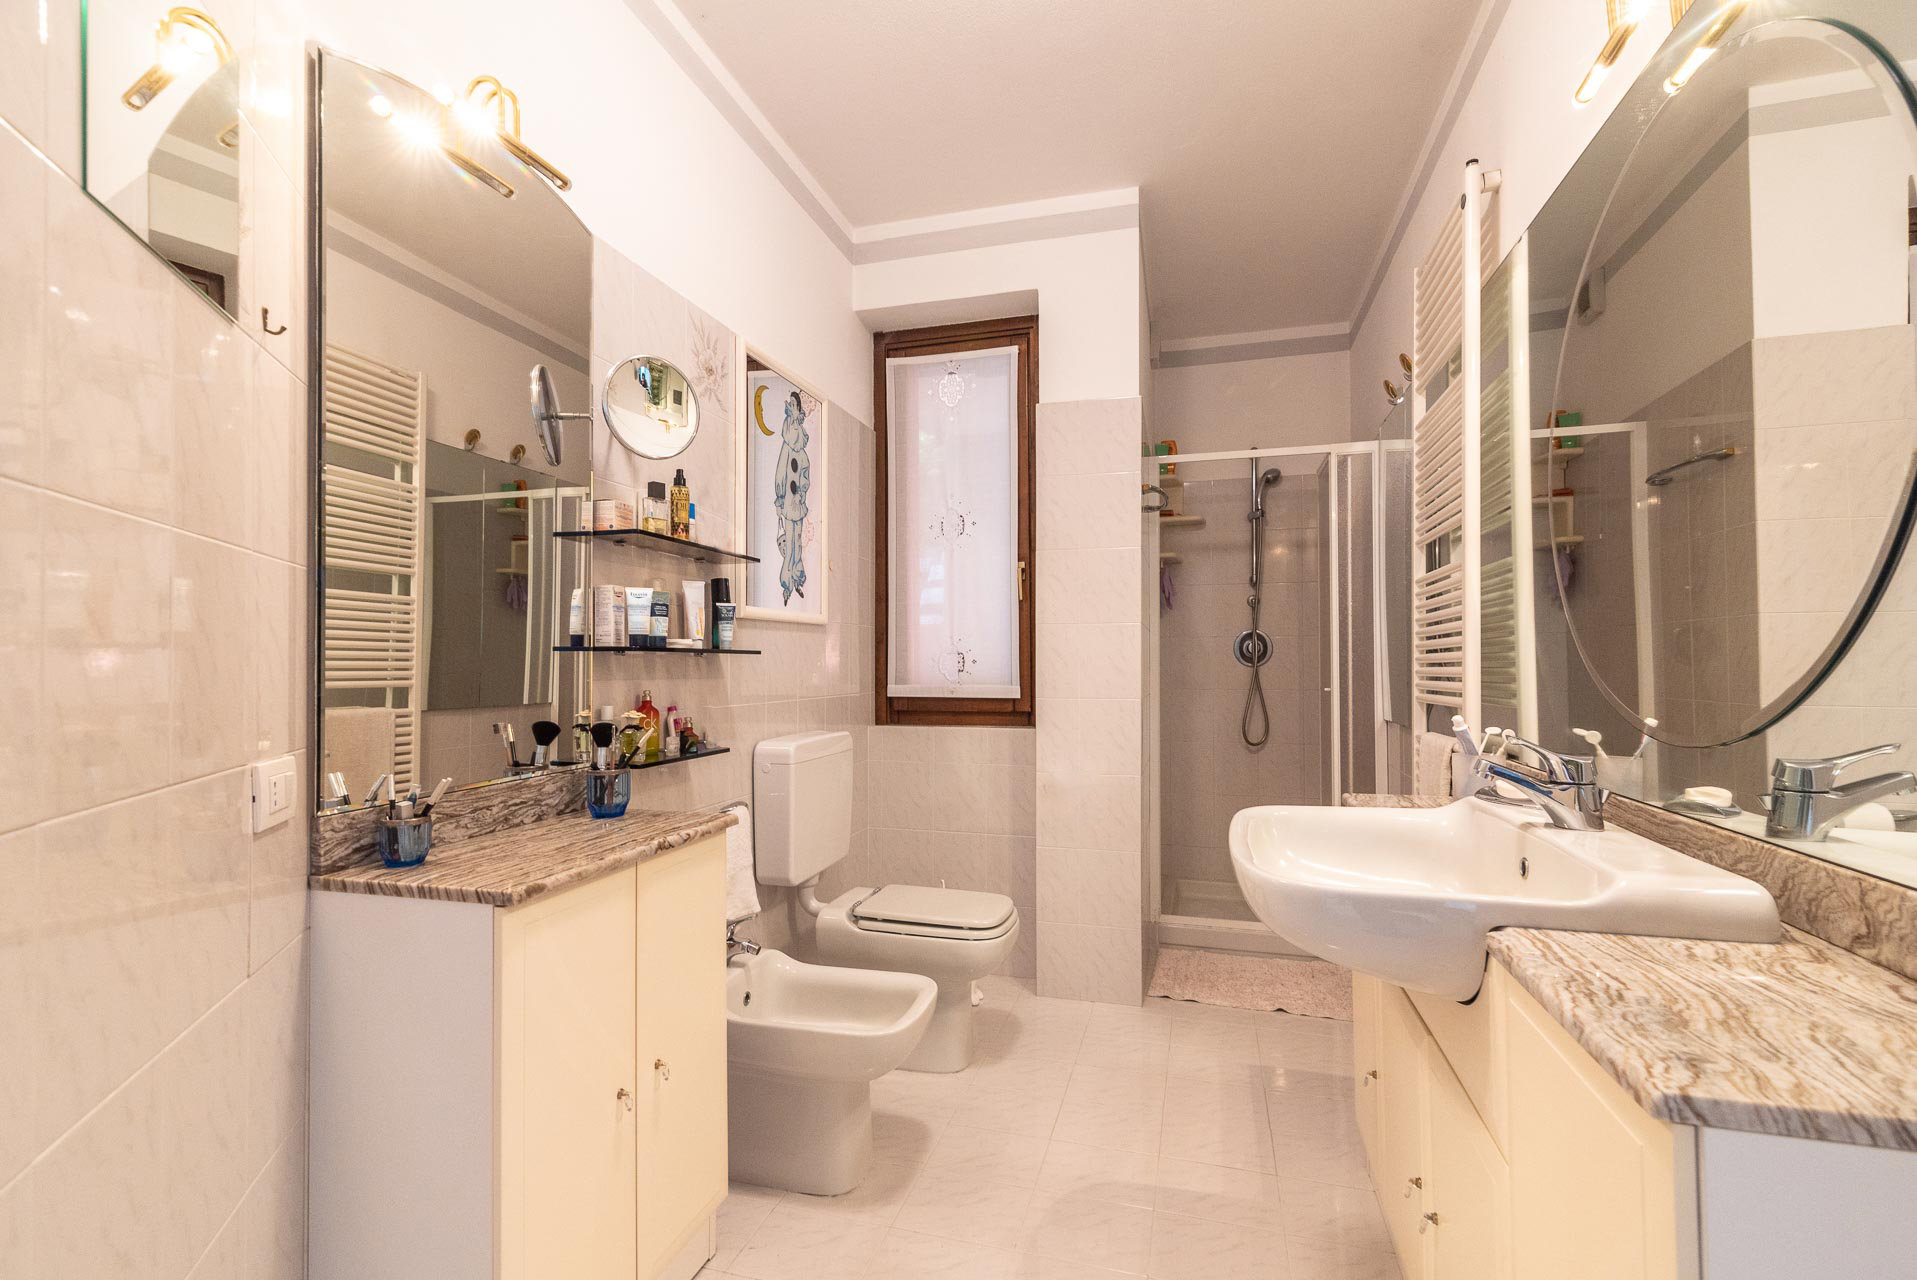 Villa for sale in Bee, with wonderful lake view - bathroom